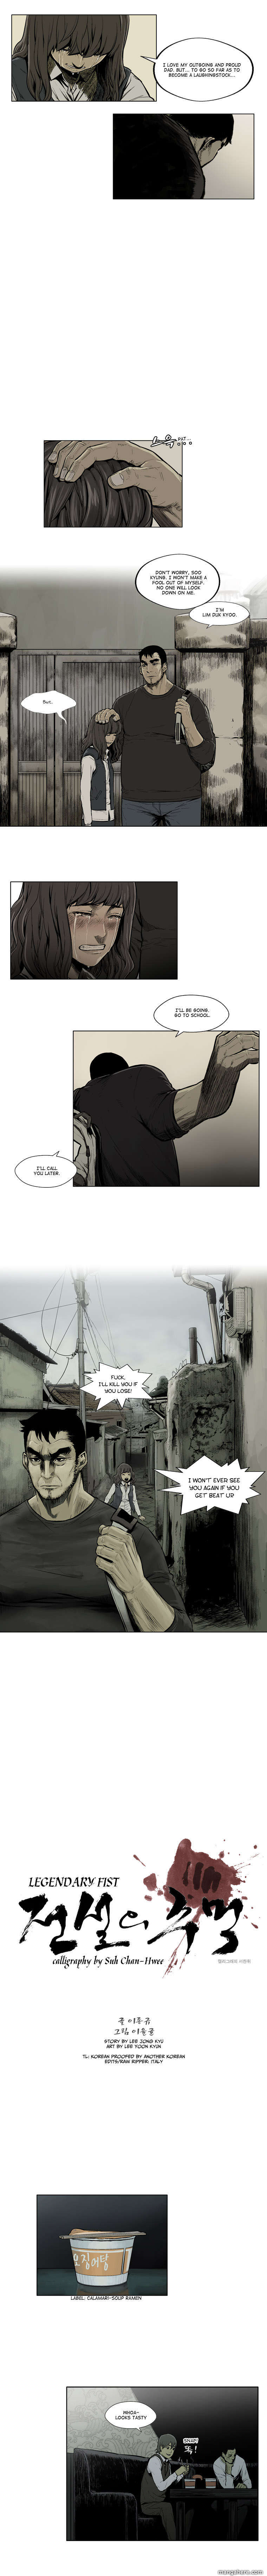 Fist Of Legend 5 Page 2